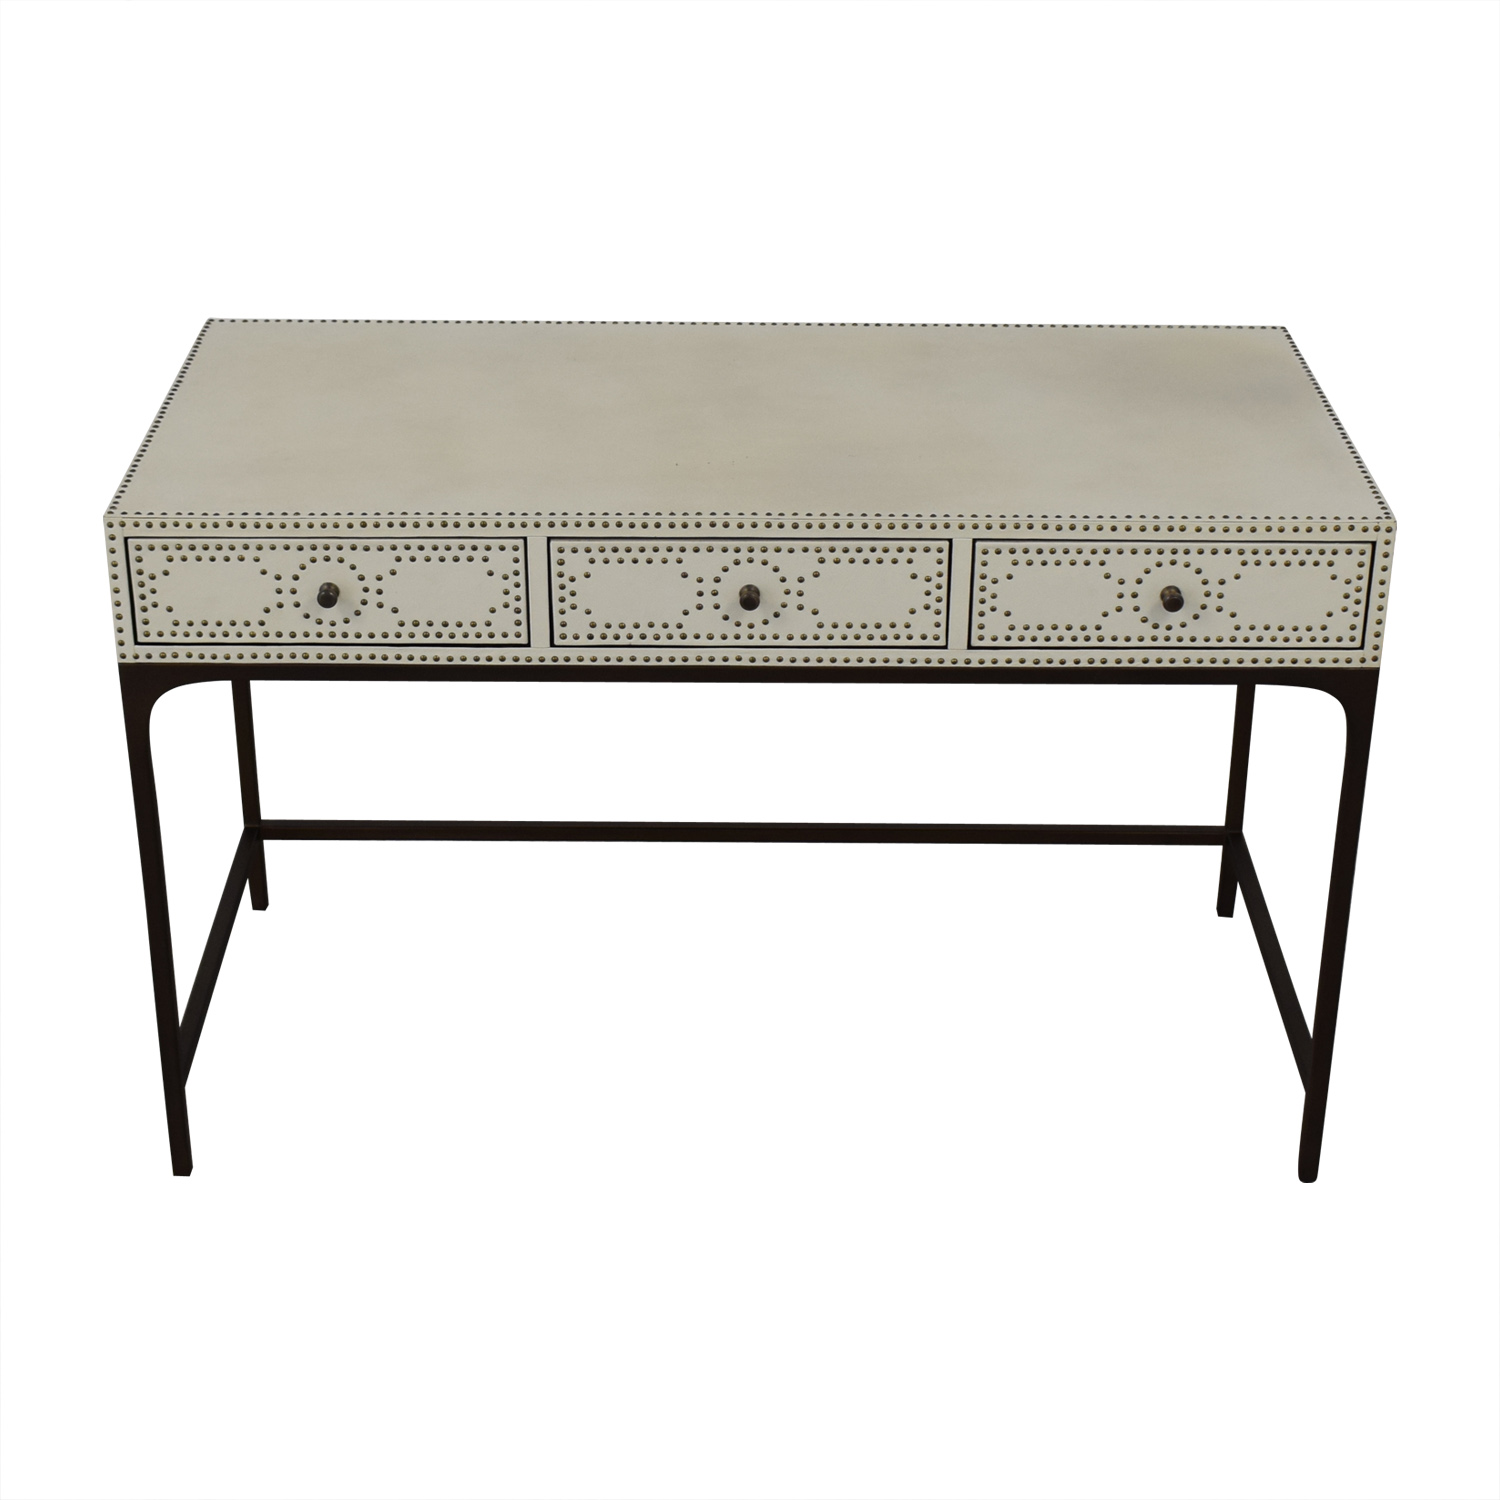 shop Restoration Hardware Restoration Hardware Nailhead Upholstered Desk online